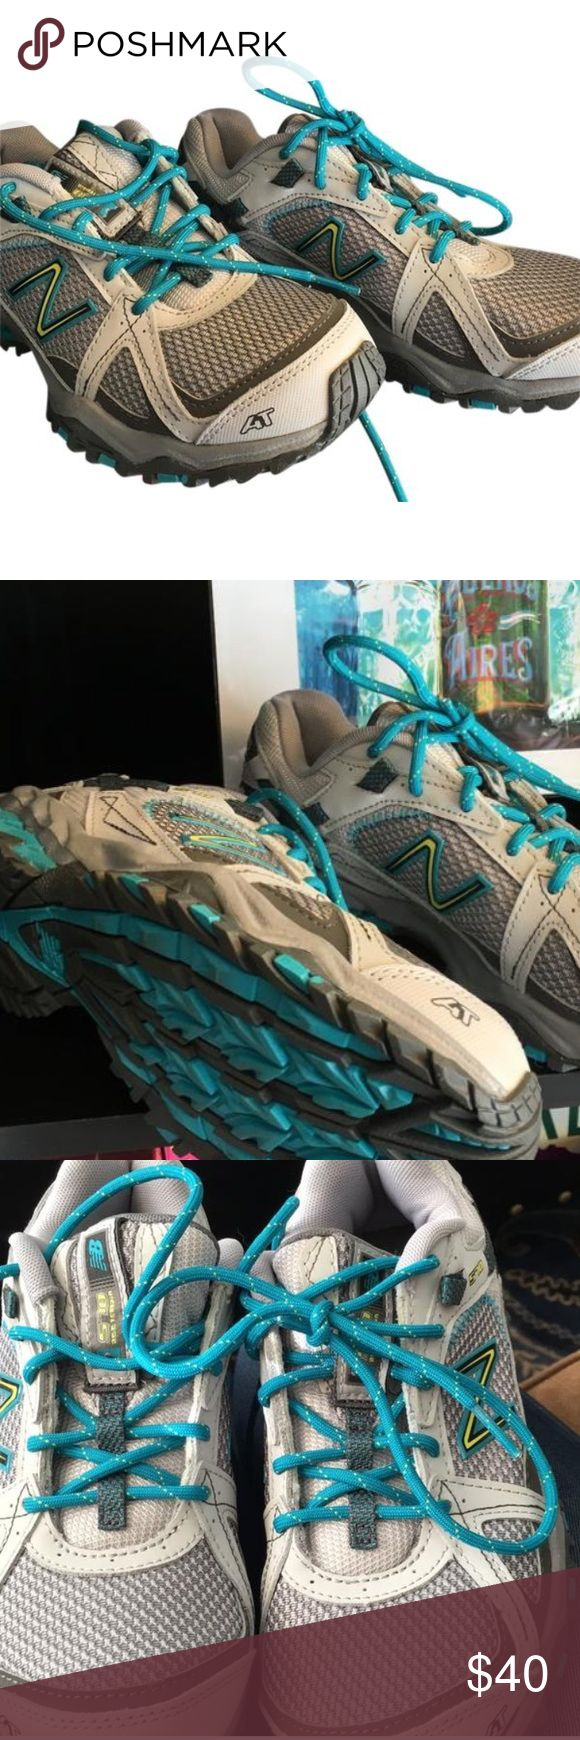 New Balance hiking shoes Women's size 6.5 New Balance new never worn trail/hiking shoes New Balance Shoes Sneakers